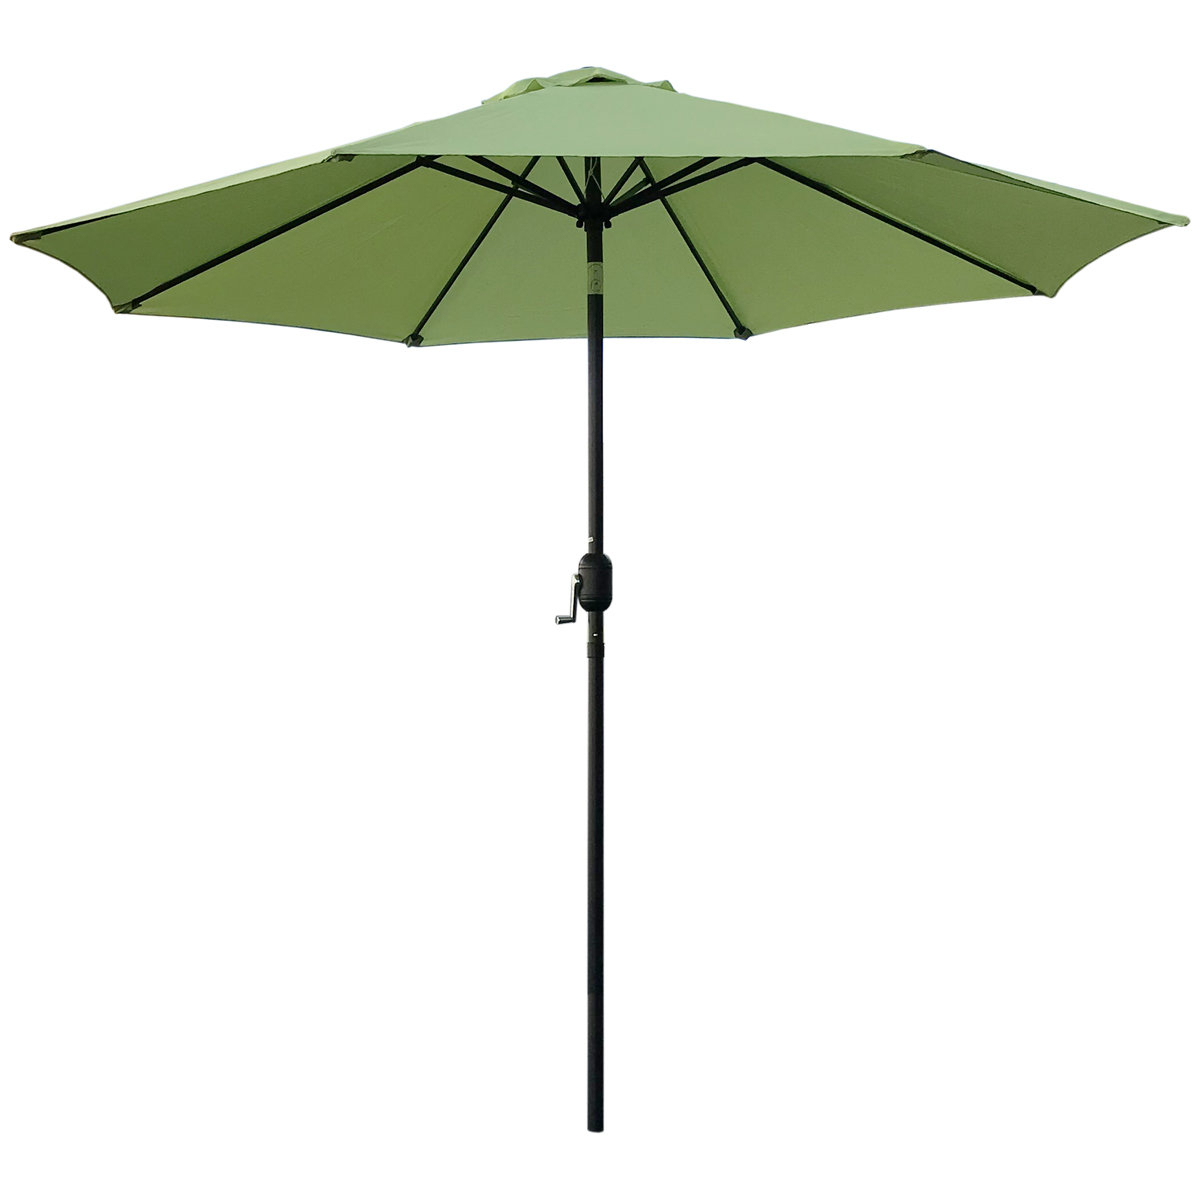 Widely Used Shropshire Market Umbrellas In Wragby 9' Market Umbrella (View 16 of 20)